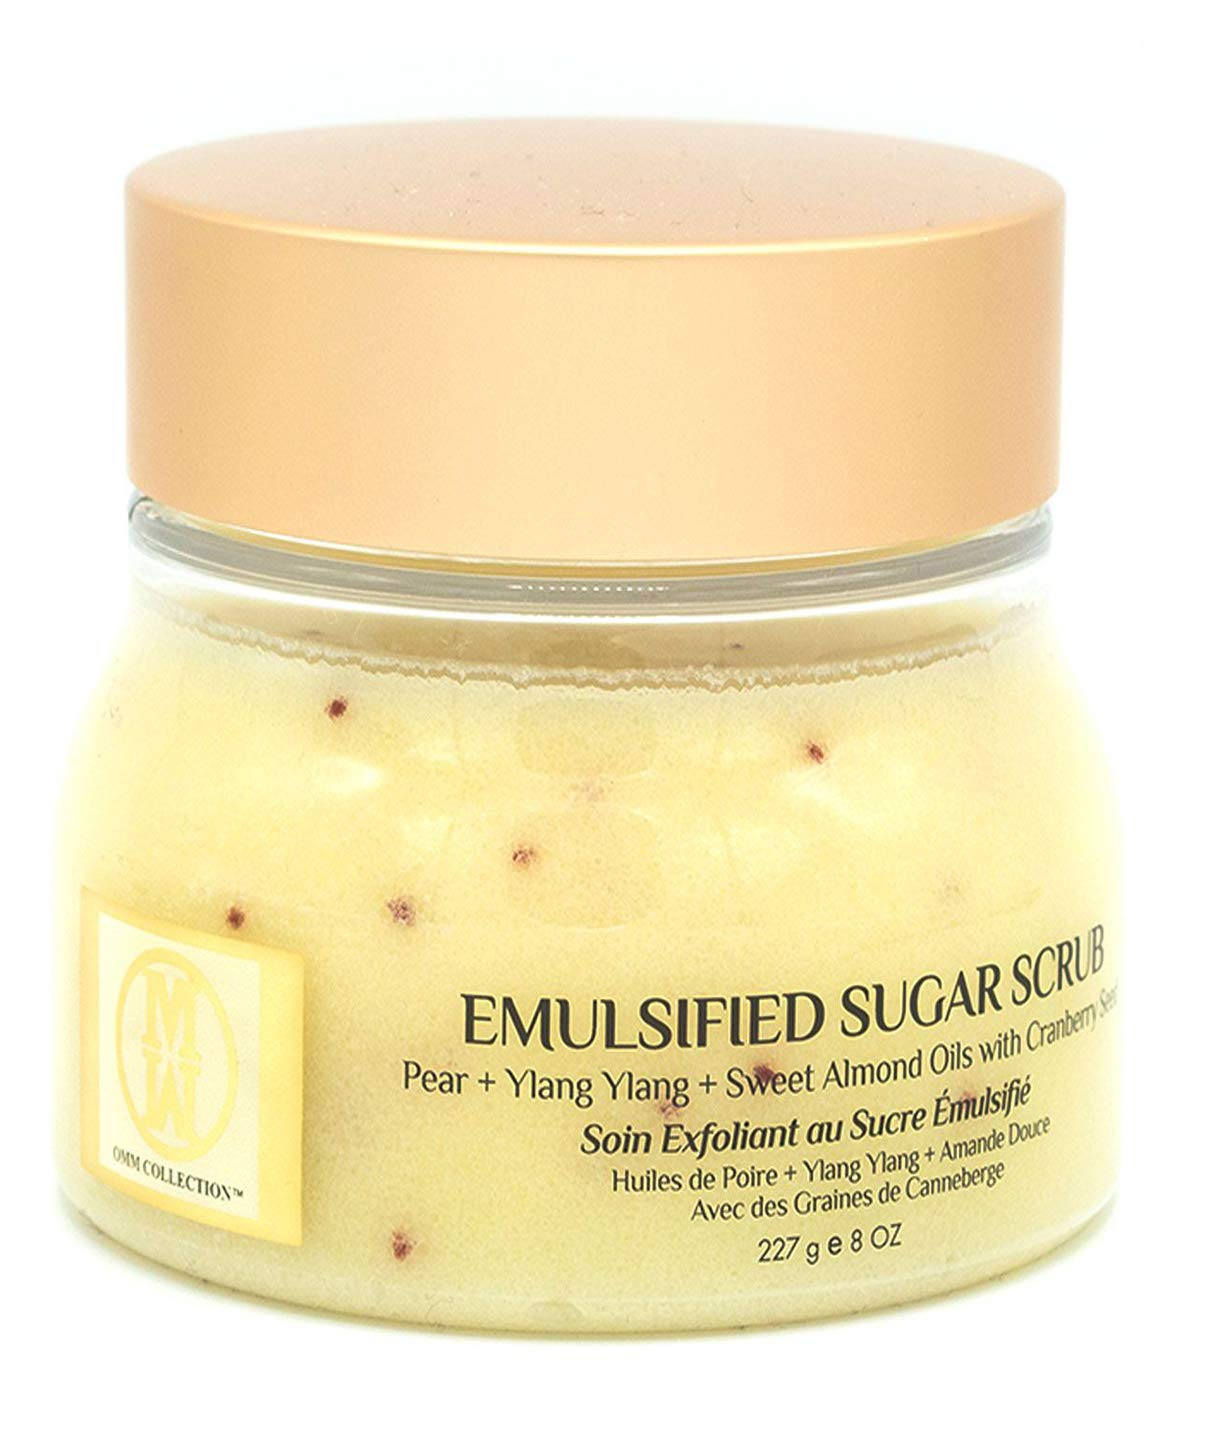 New OMM Collection Emulsified Sugar Scrub (8oz/227g) - French Pear - Natural Hand & Body Scrub with Camellia Sinensis Oil, Sweet Almond Oil & Coconut Oil - Nourishing, Moisturizing & Exfoliating Skin